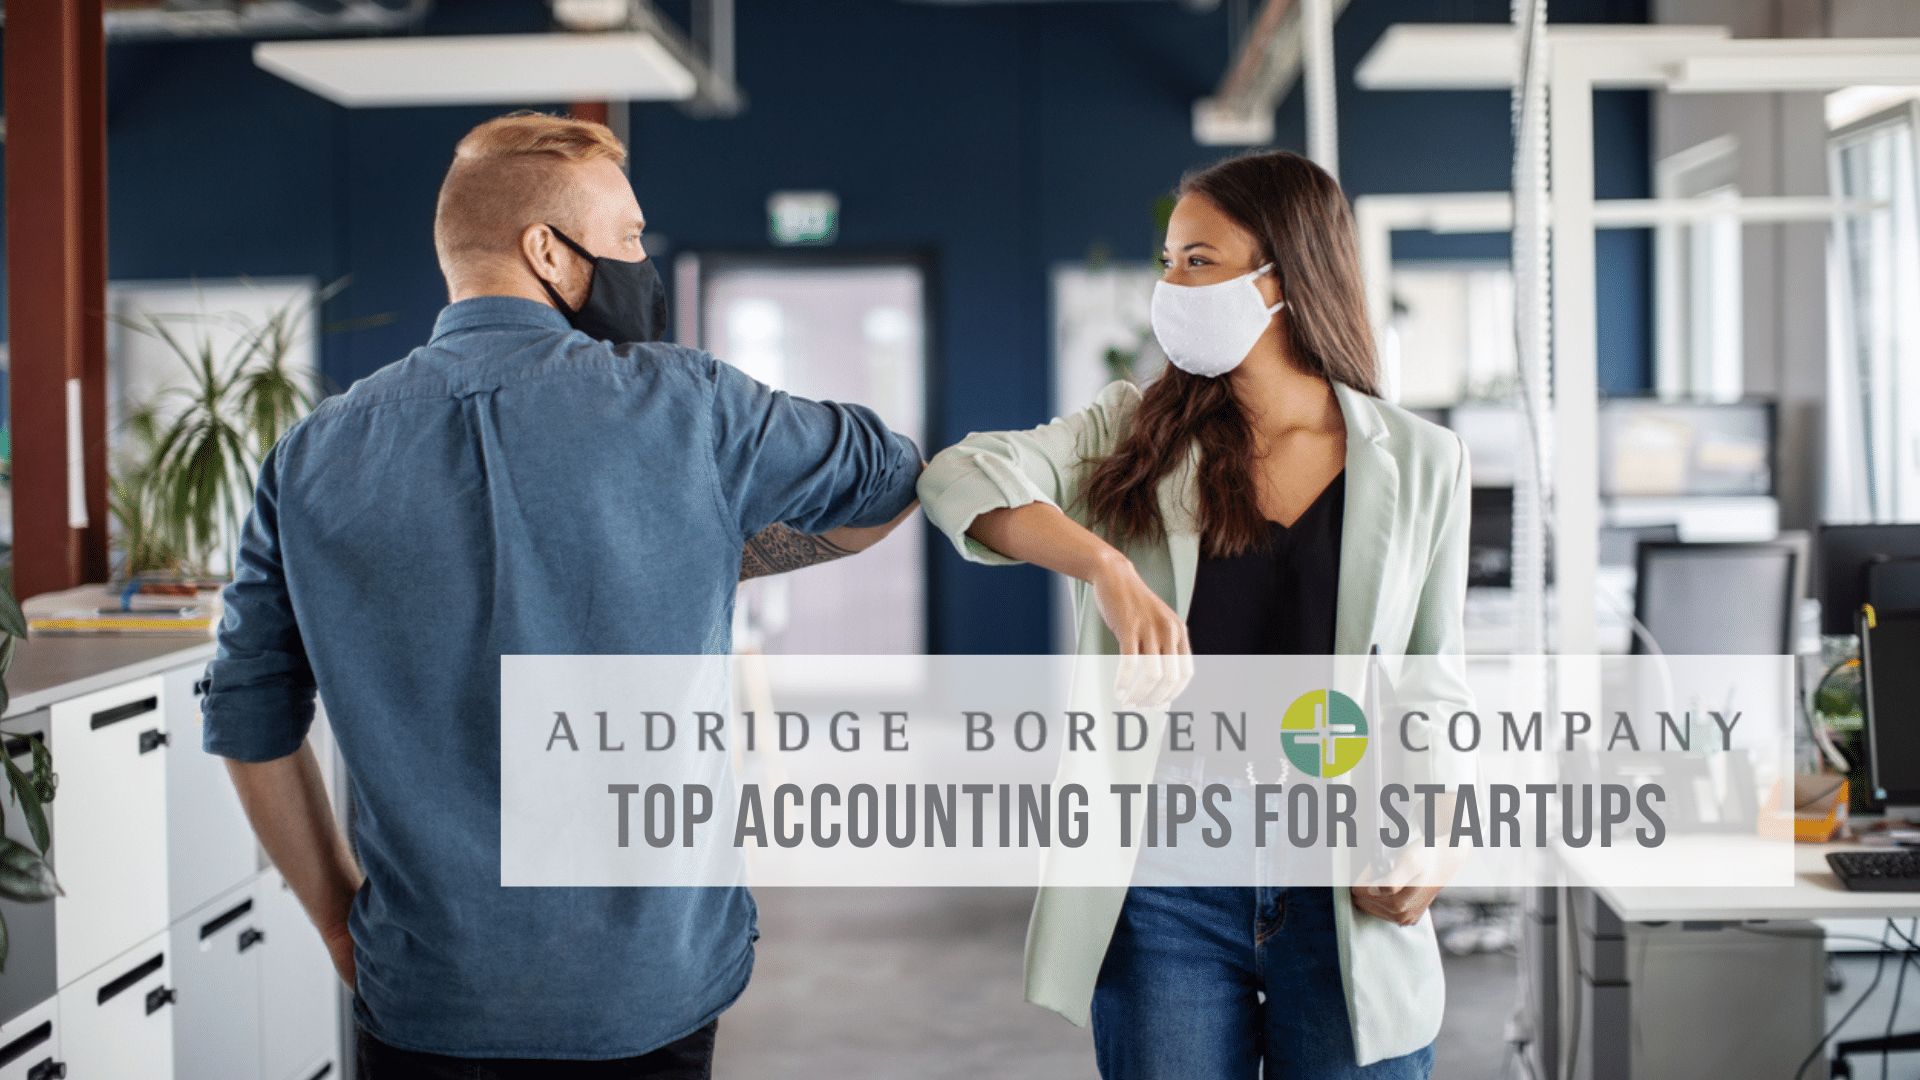 Top 5 Accounting Tips For New Startups